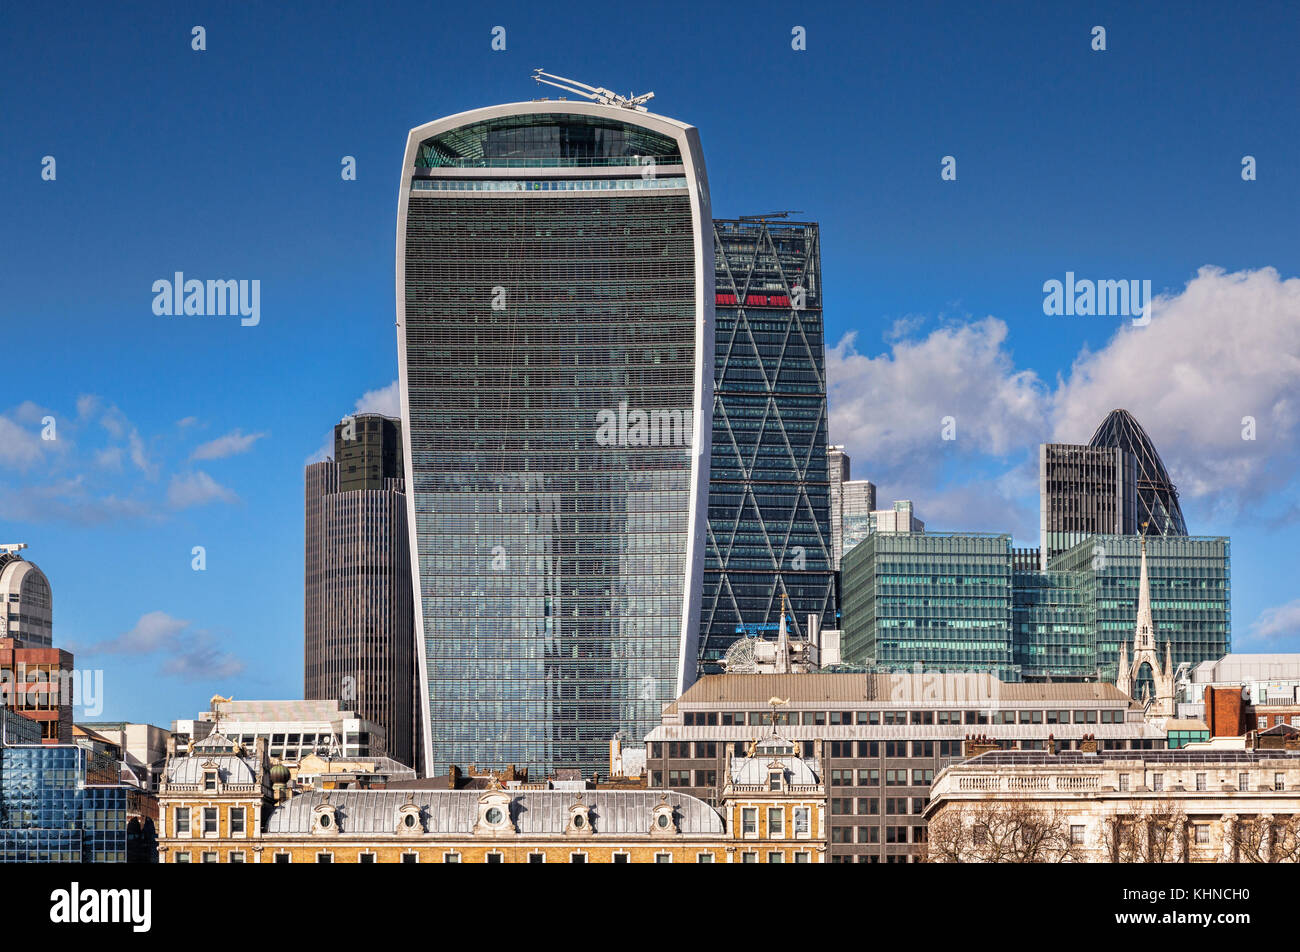 London skyline, with 20 Fenchurch Street, London, the building known as the Walkie Talkie. - Stock Image